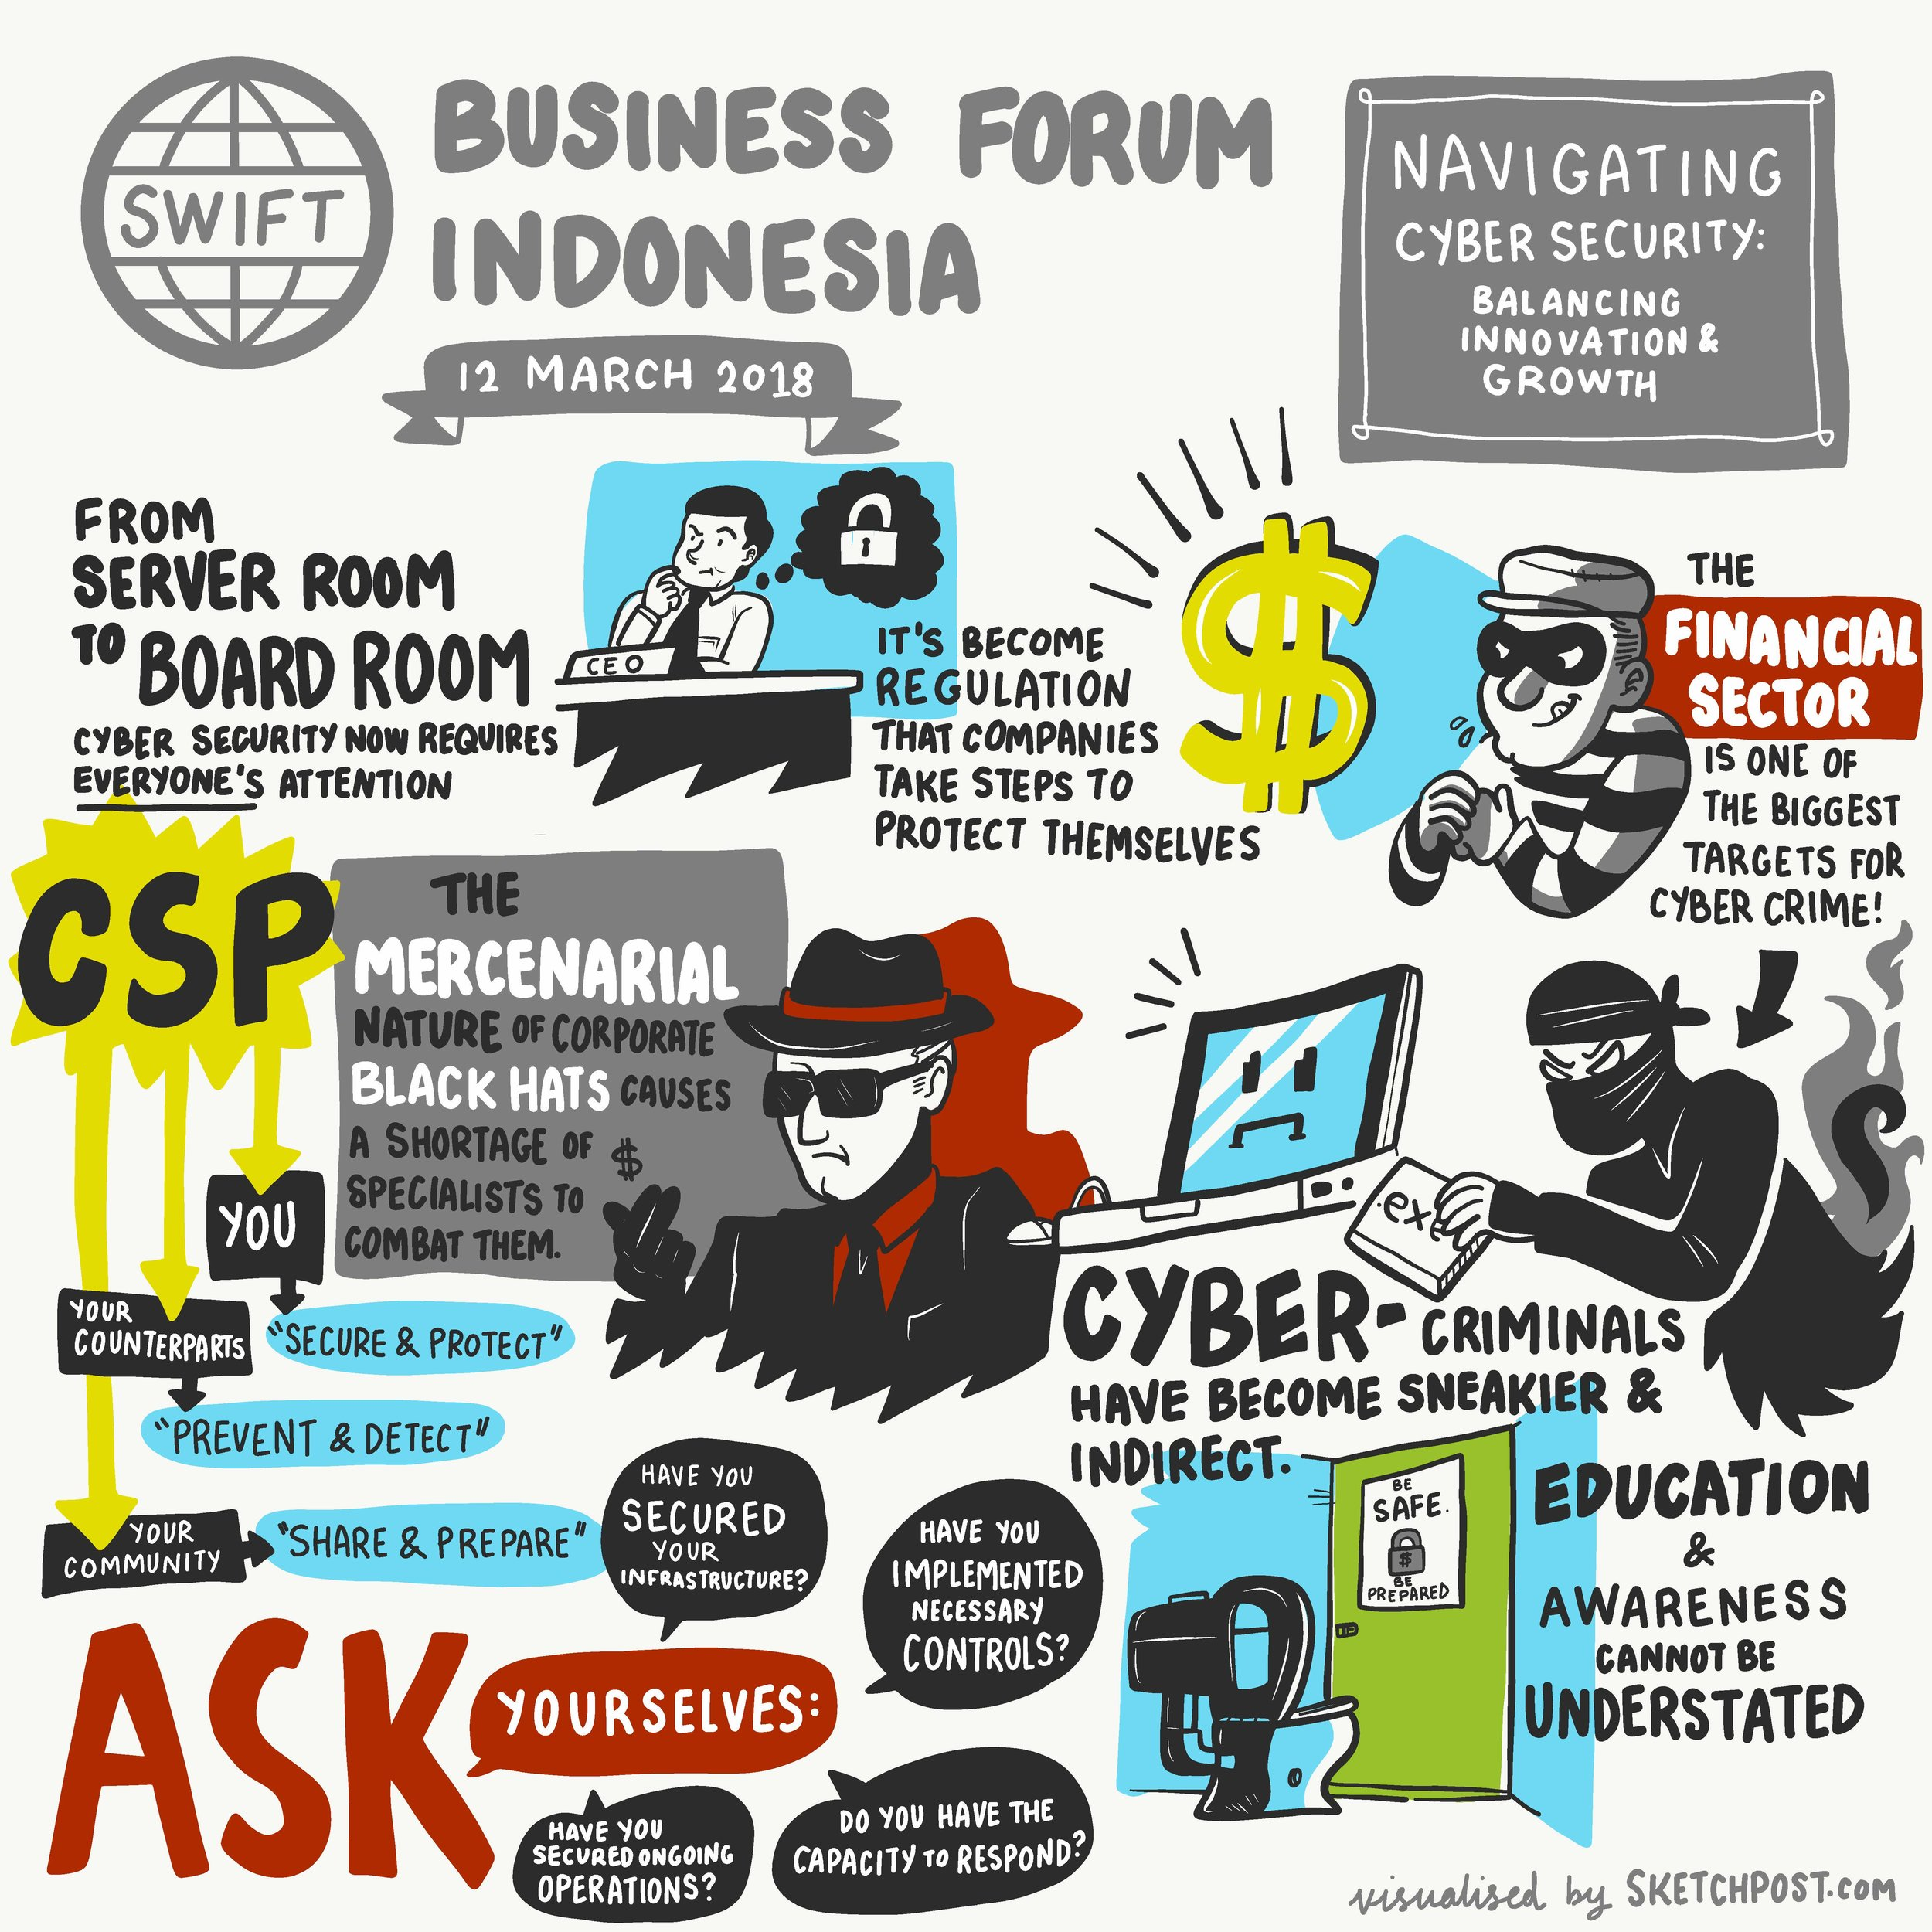 SWIFT Jakarta Business Forum 2018 sketchpost-digital-graphic-recording-infographic-video-singapore-malaysia-hong-kong